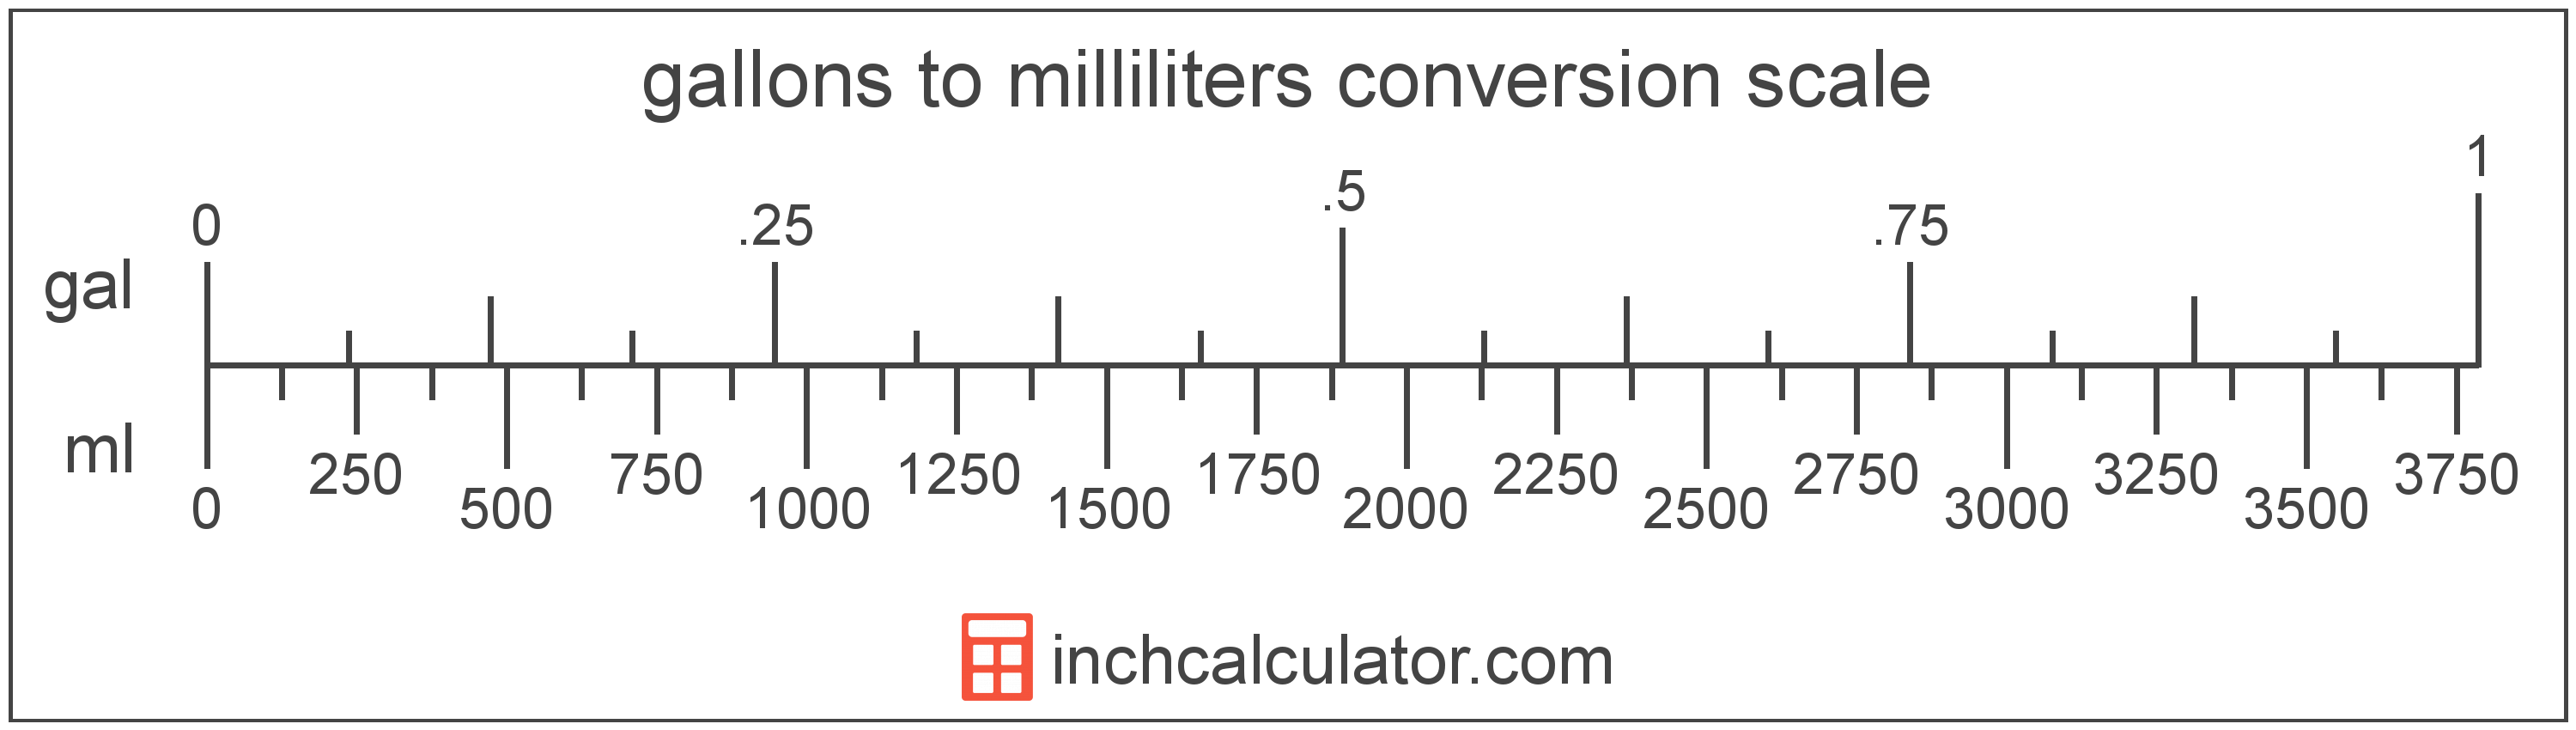 conversion scale showing milliliters and equivalent gallons volume values